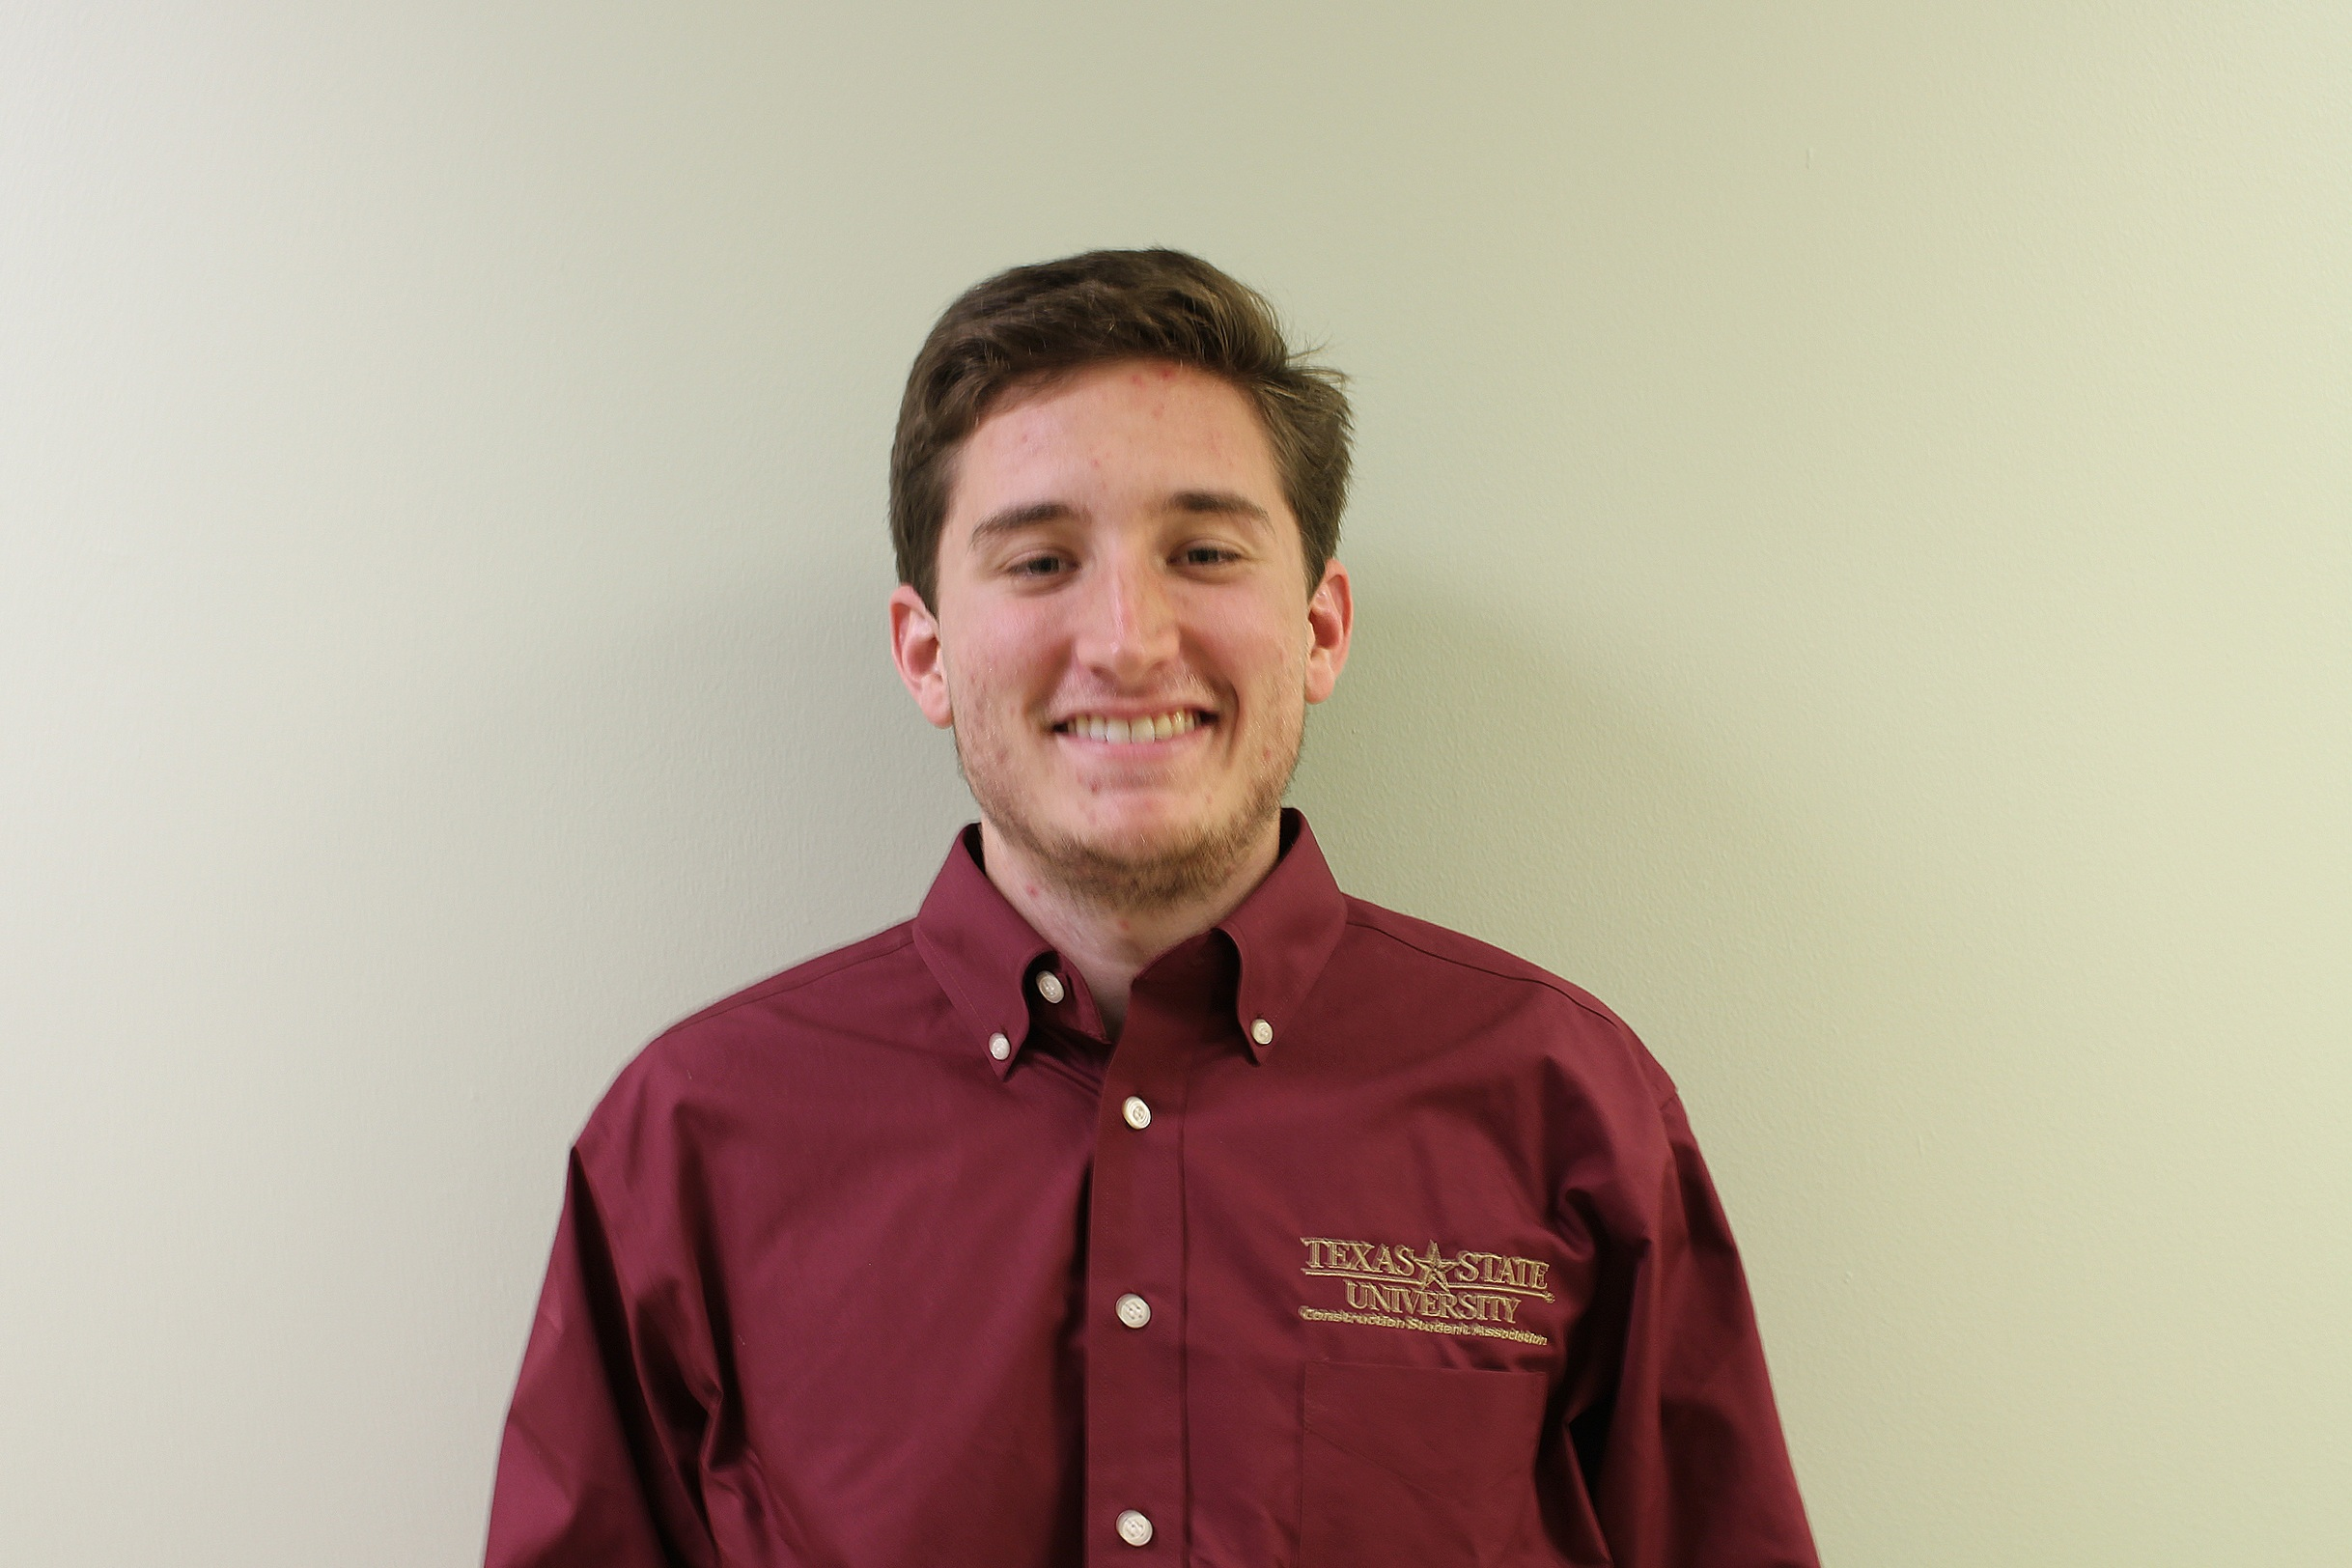 NAHB Ambassador - Ethan Lewis - Hometown: Waller, TexasGraduation: Fall 2020Field of Interest: ResidentialPast Experience: Kirby walls custom Builders, Kahler Custom Homes, NAHB CompetitionTasks: Responsible for maintaining a relationship between Students and NAHB. In charge of organizing meetings, events, and volunteering opportunities throughout the semester.Contact: Ejl61@txstate.edu